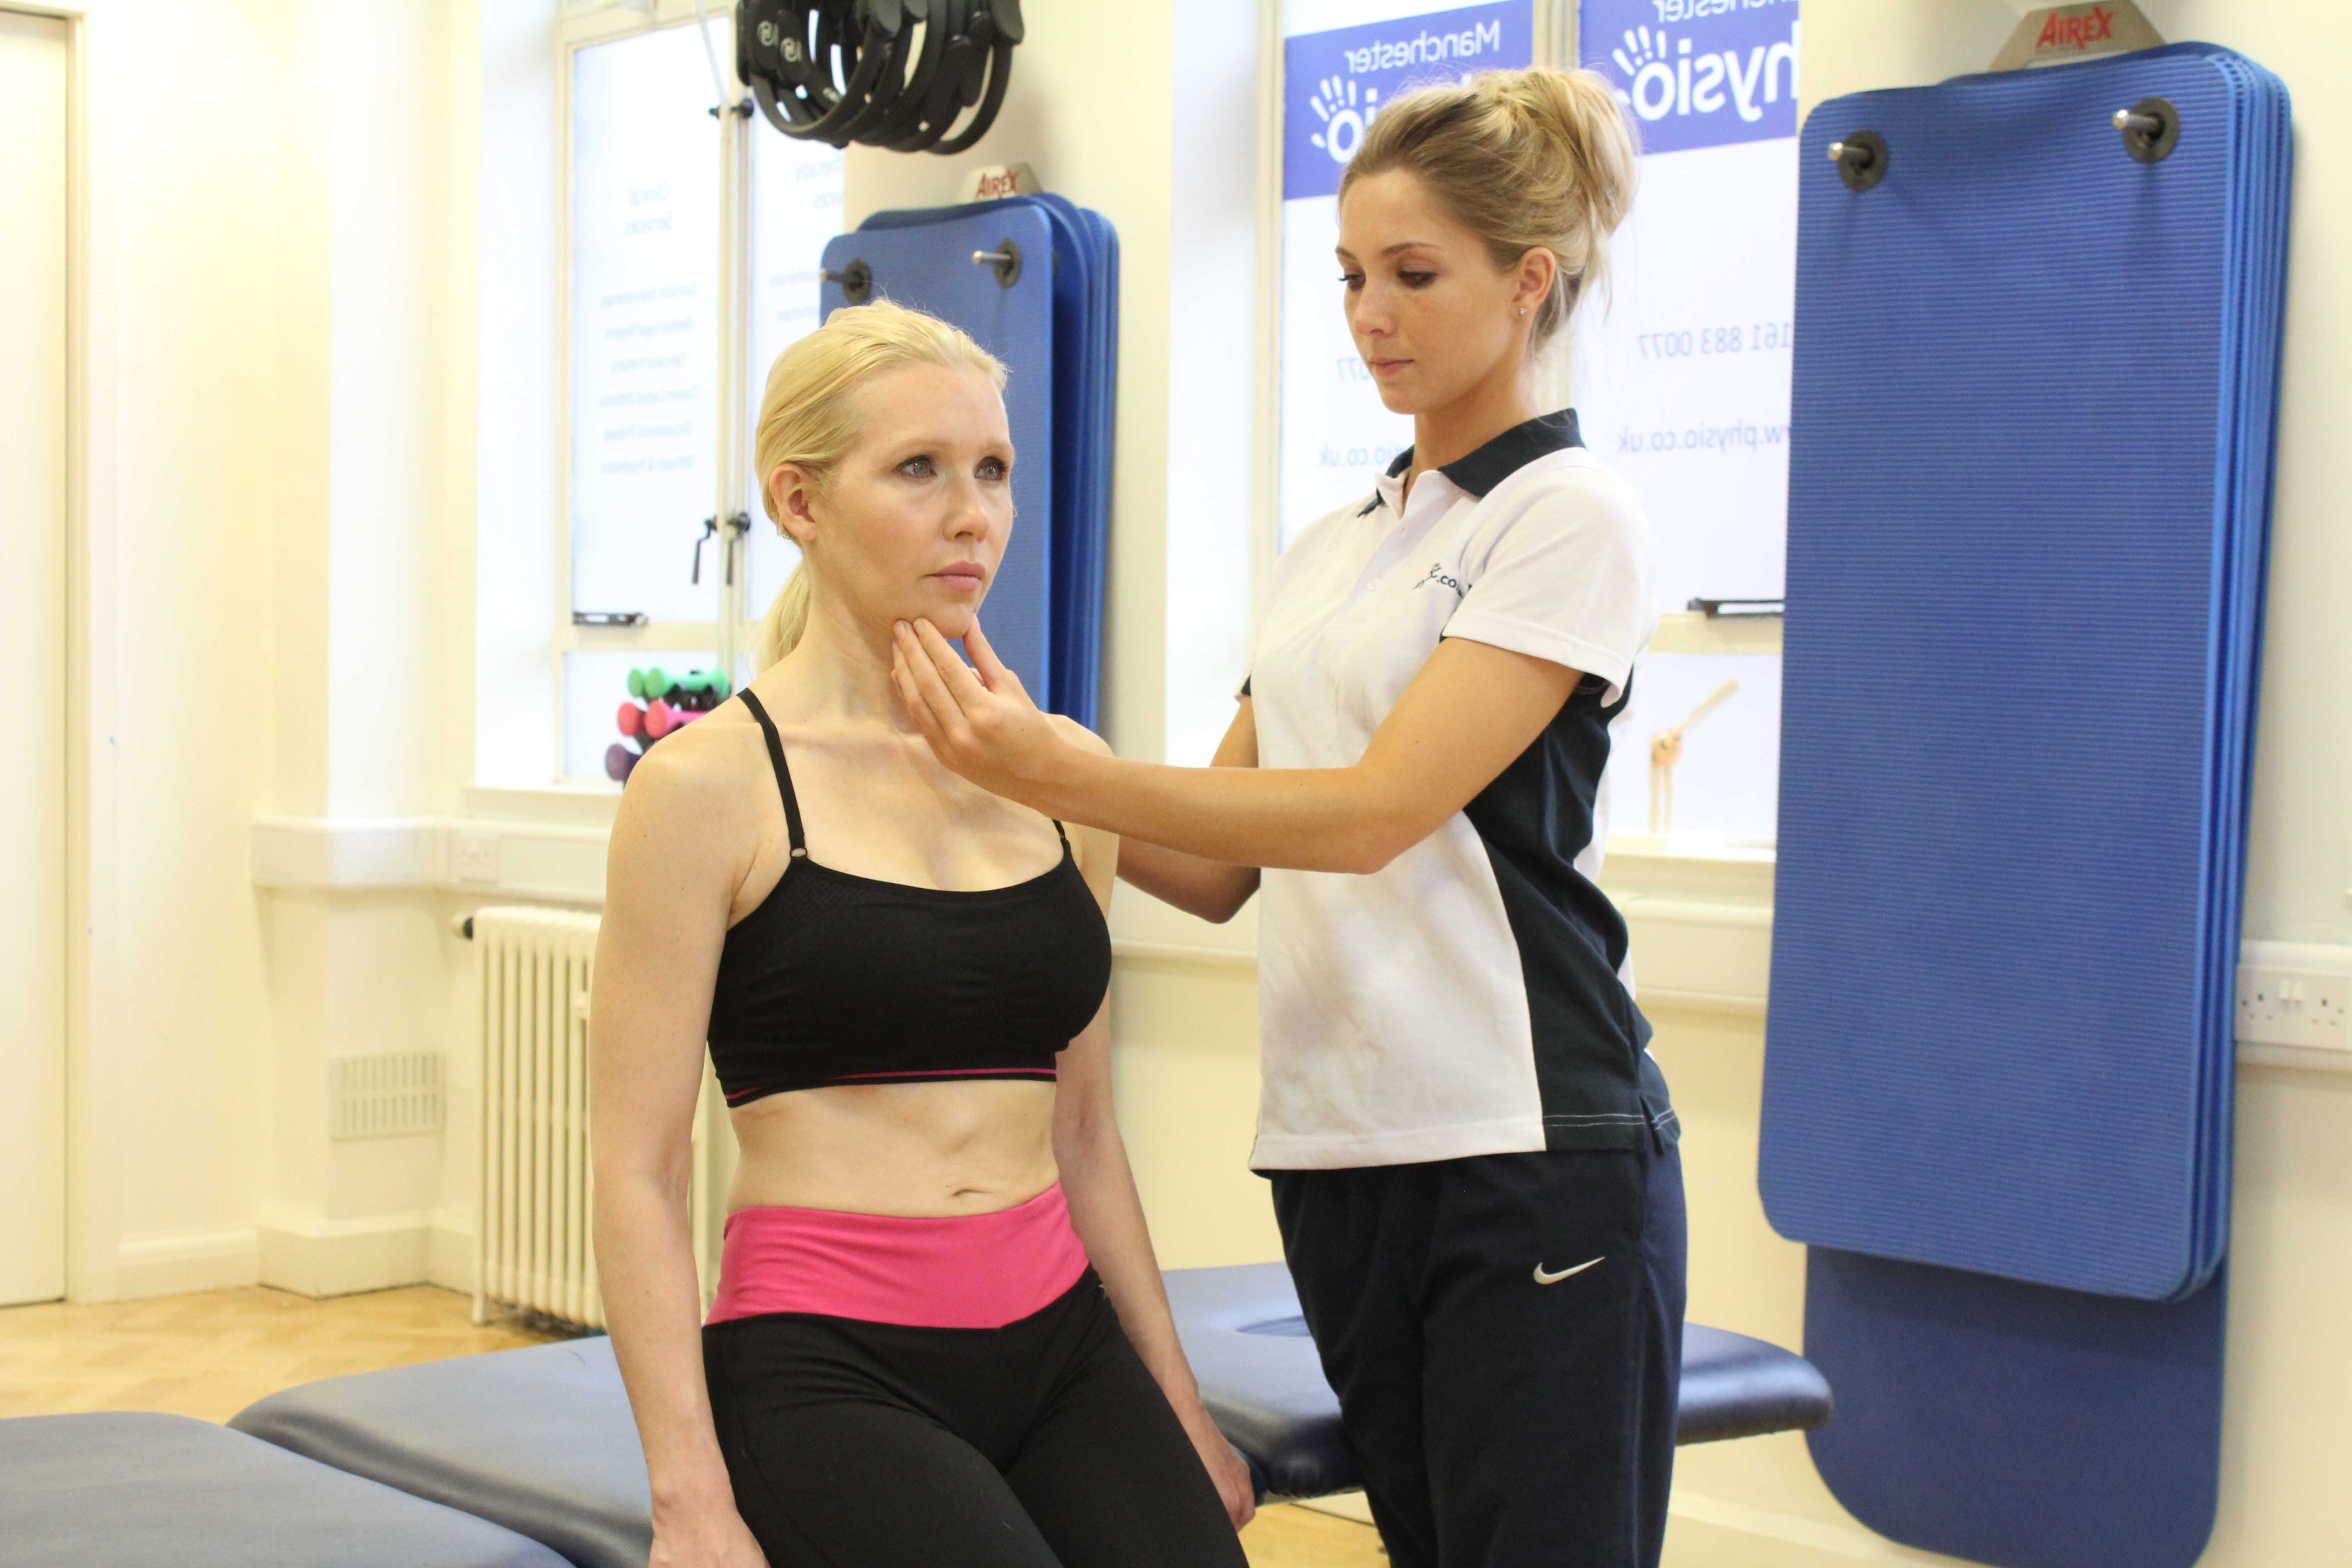 Postural realignment exercises for the neck assisted by specialist MSK therapist